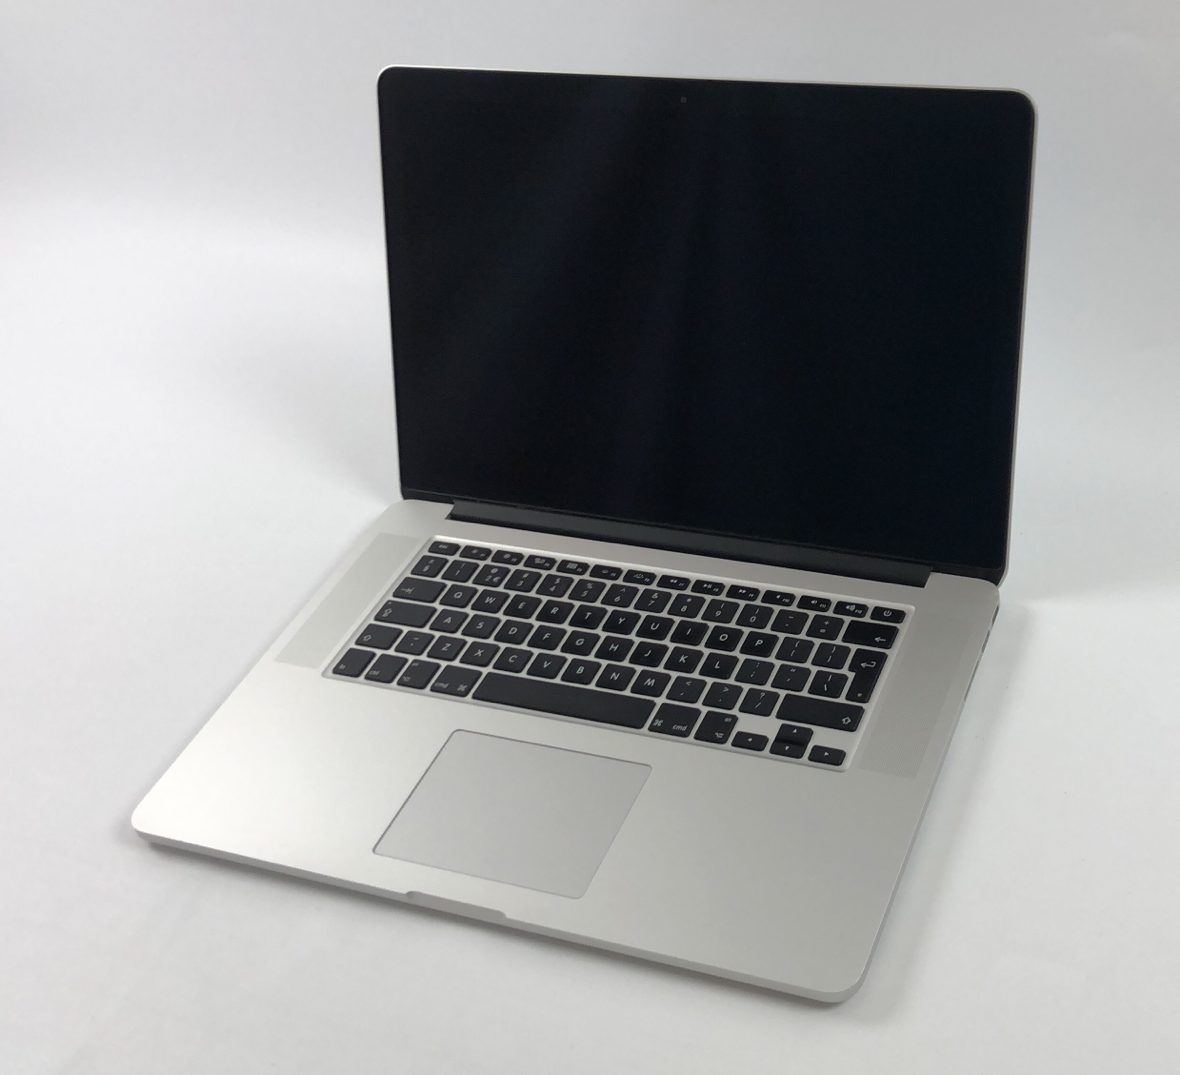 "MacBook Pro Retina 15"" Mid 2015 (Intel Quad-Core i7 2.5 GHz 16 GB RAM 512 GB SSD), Intel Quad-Core i7 2.5 GHz, 16 GB RAM, 512 GB SSD, obraz 1"